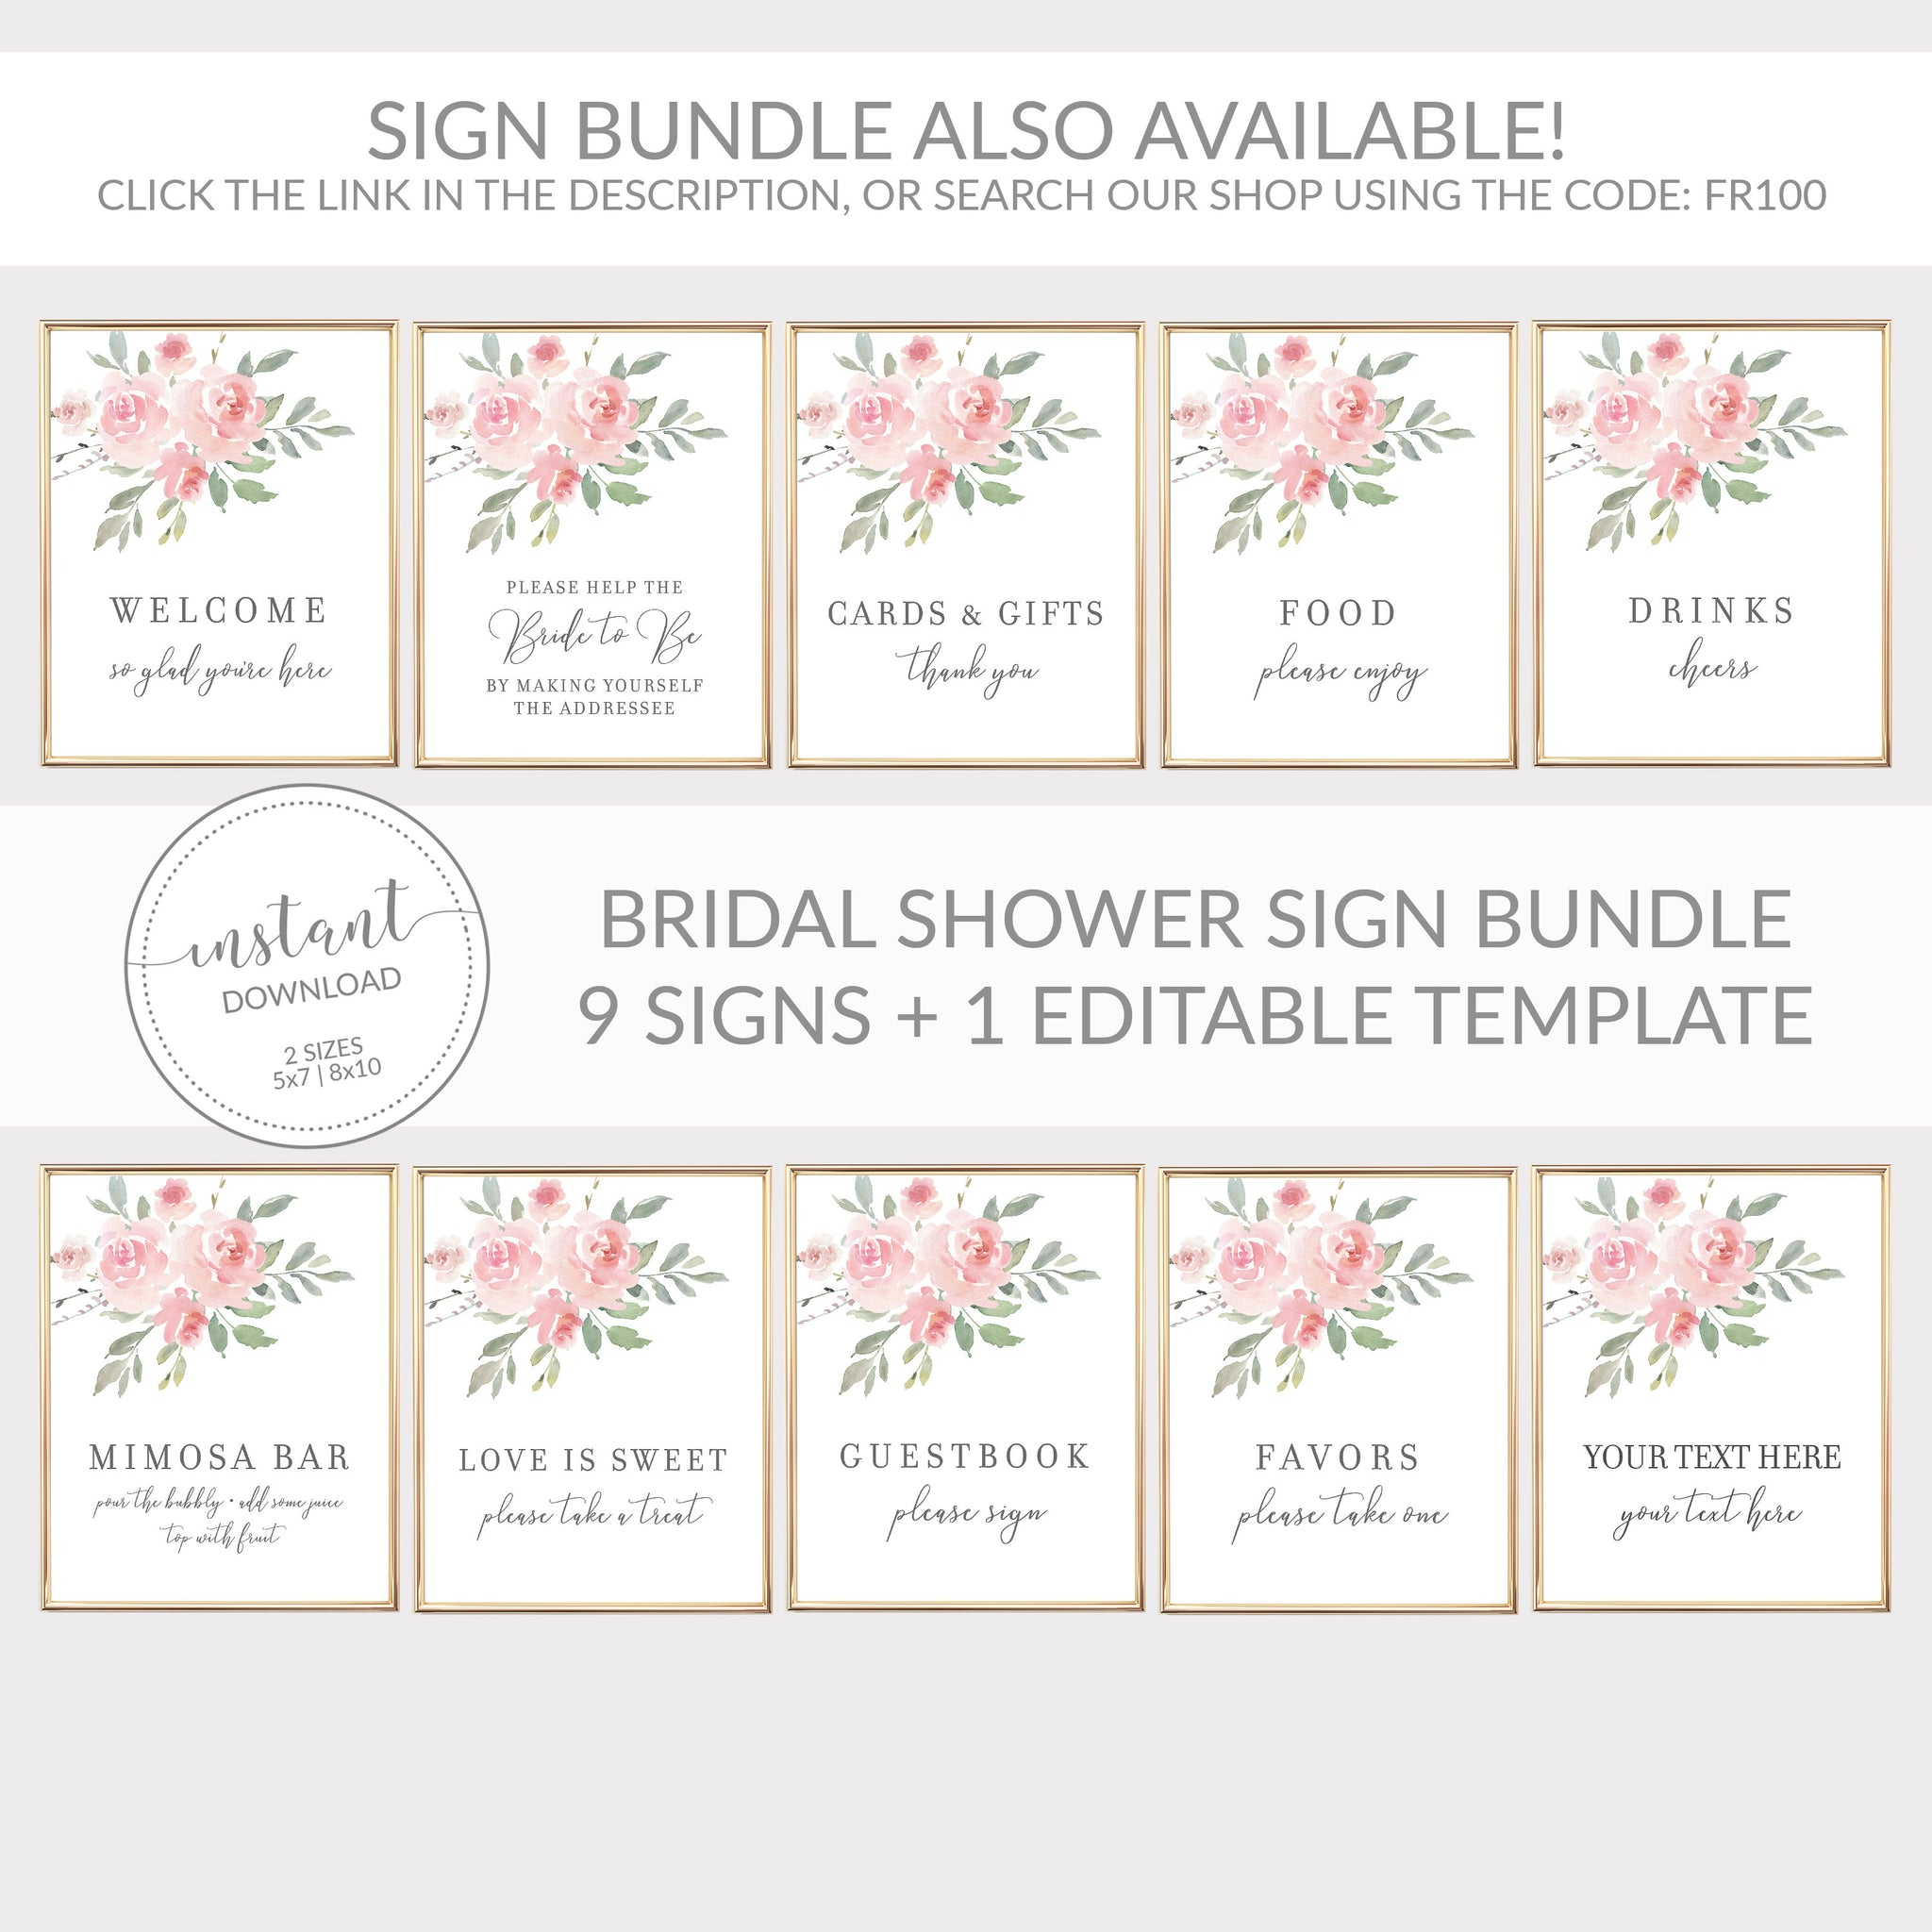 Blush Pink Floral Mimosa Bar Printable Sign INSTANT DOWNLOAD, Birthday, Bridal Shower, Baby Shower, Wedding Decorations and Supplies - FR100 - @PlumPolkaDot